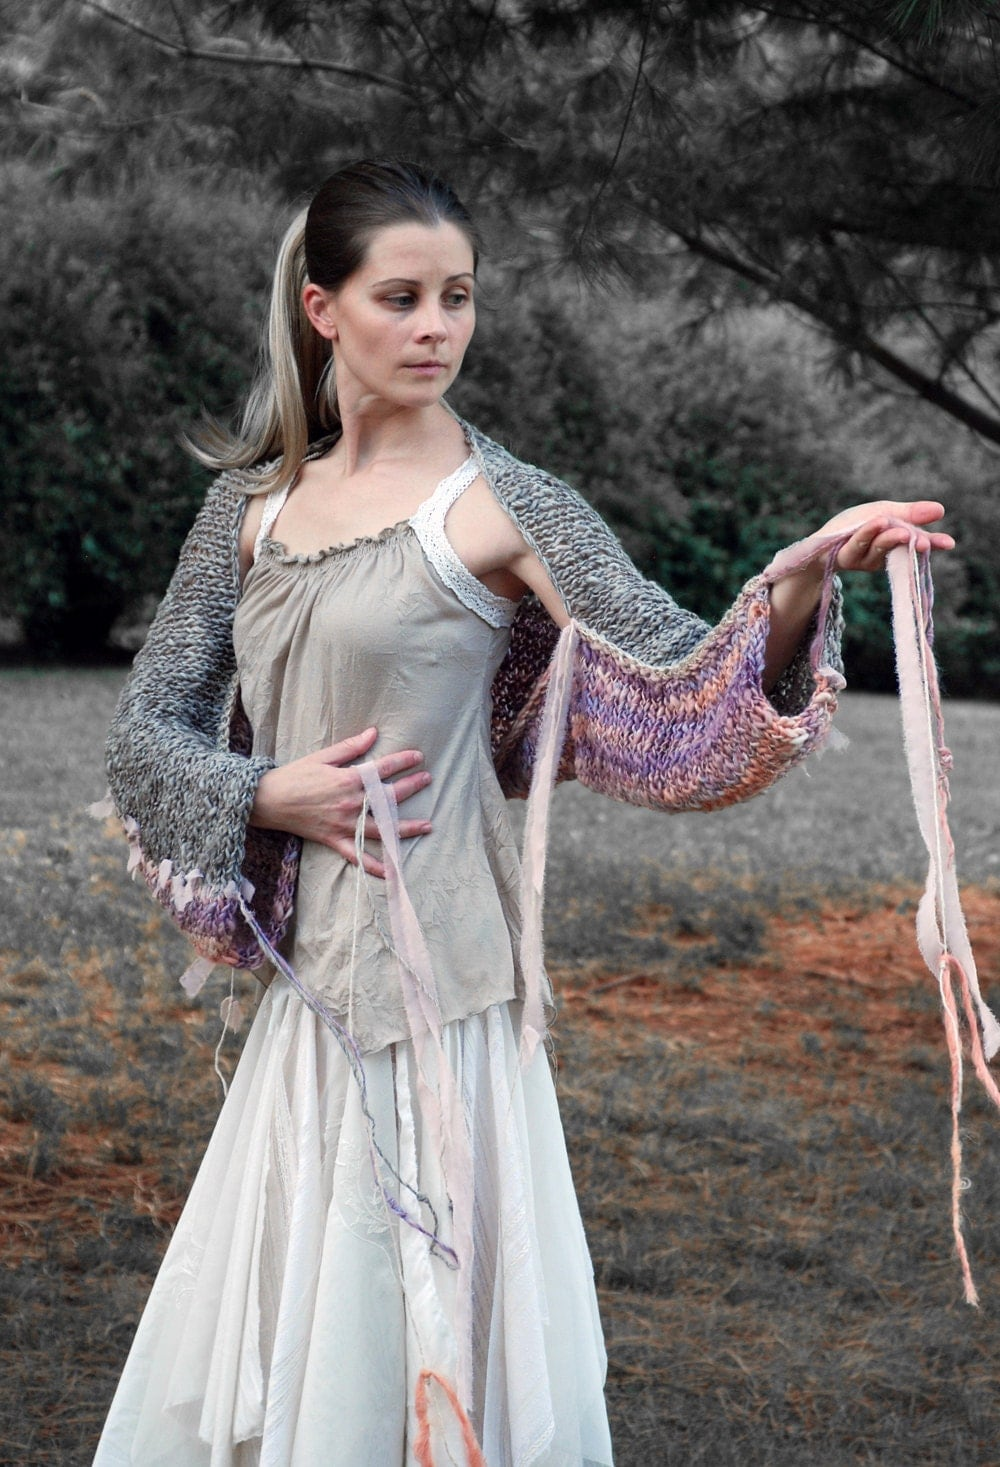 peaches and pixies . artistically handknit woodland shrug, with one-of-a-kind handspun yarns.